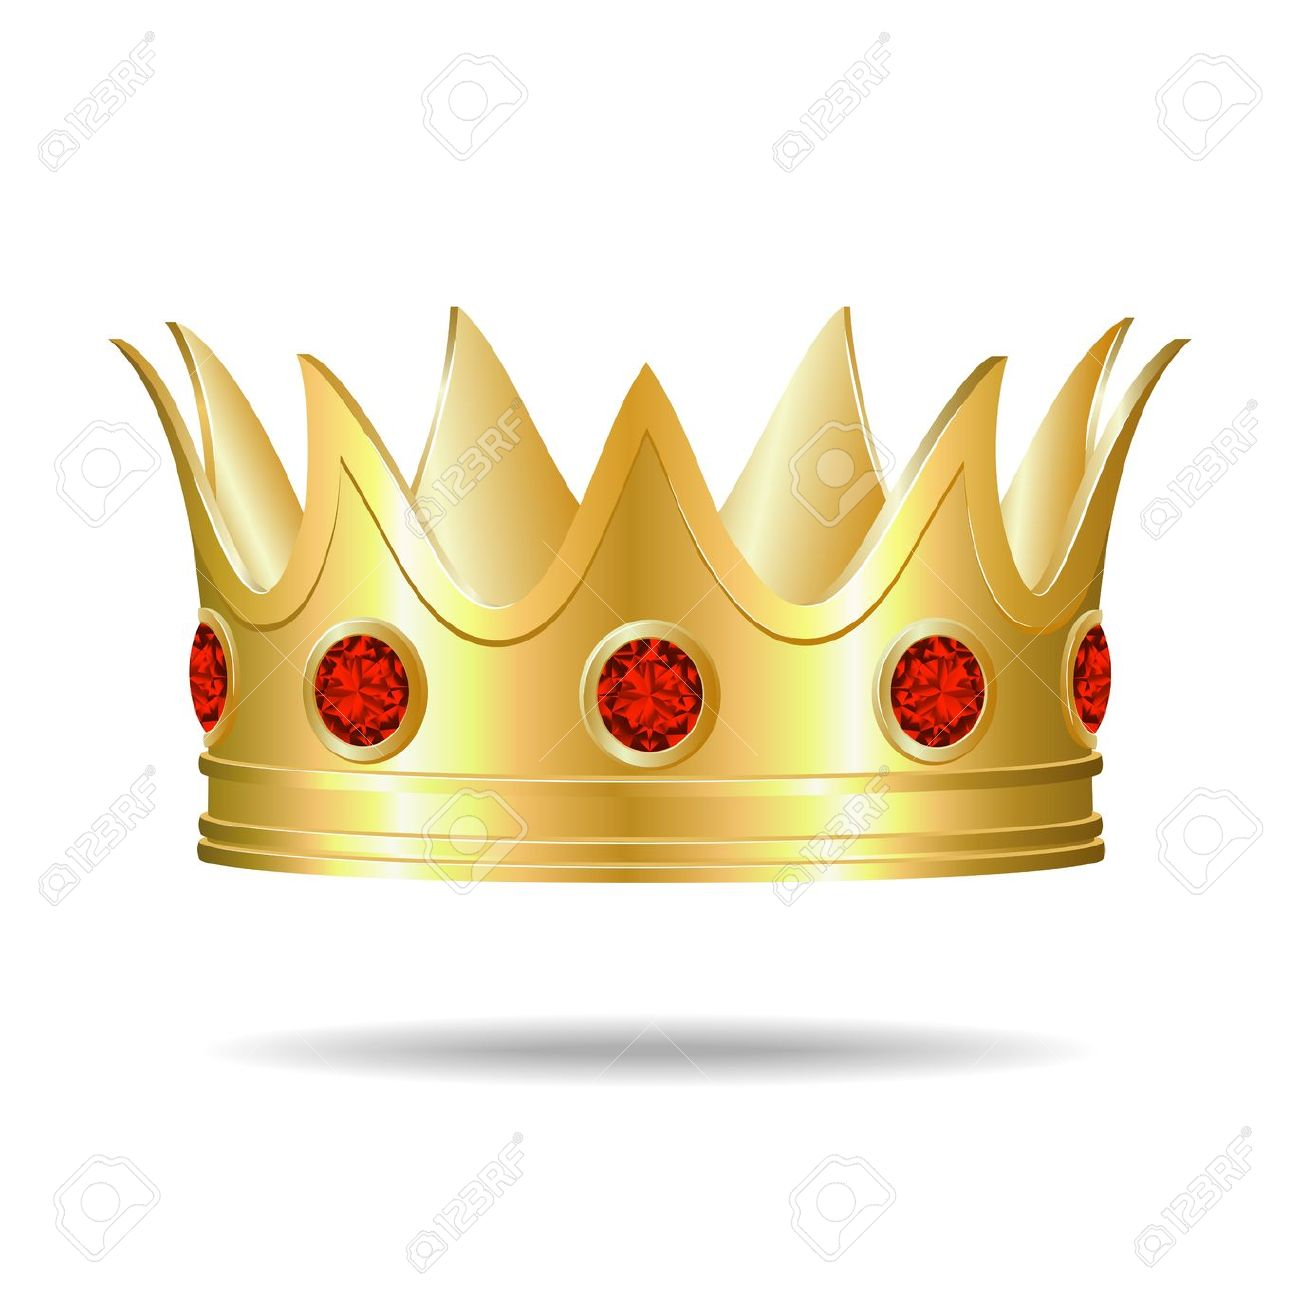 King Crown Stock Photos Images. Royalty Free King Crown Images And.